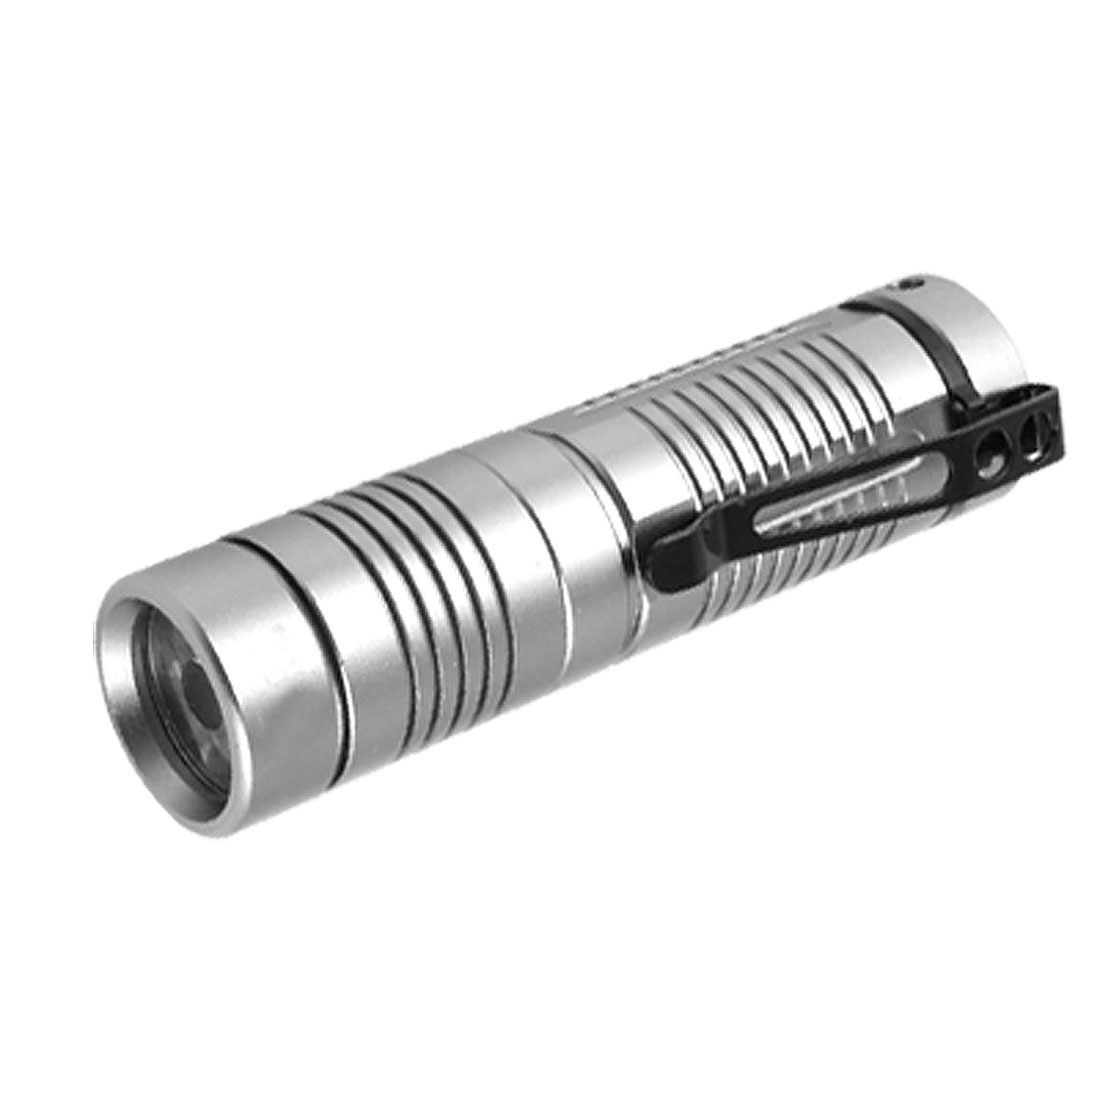 1W 90Lm LED White Light Gray Aluminum Alloy Casing Flashlight Torch